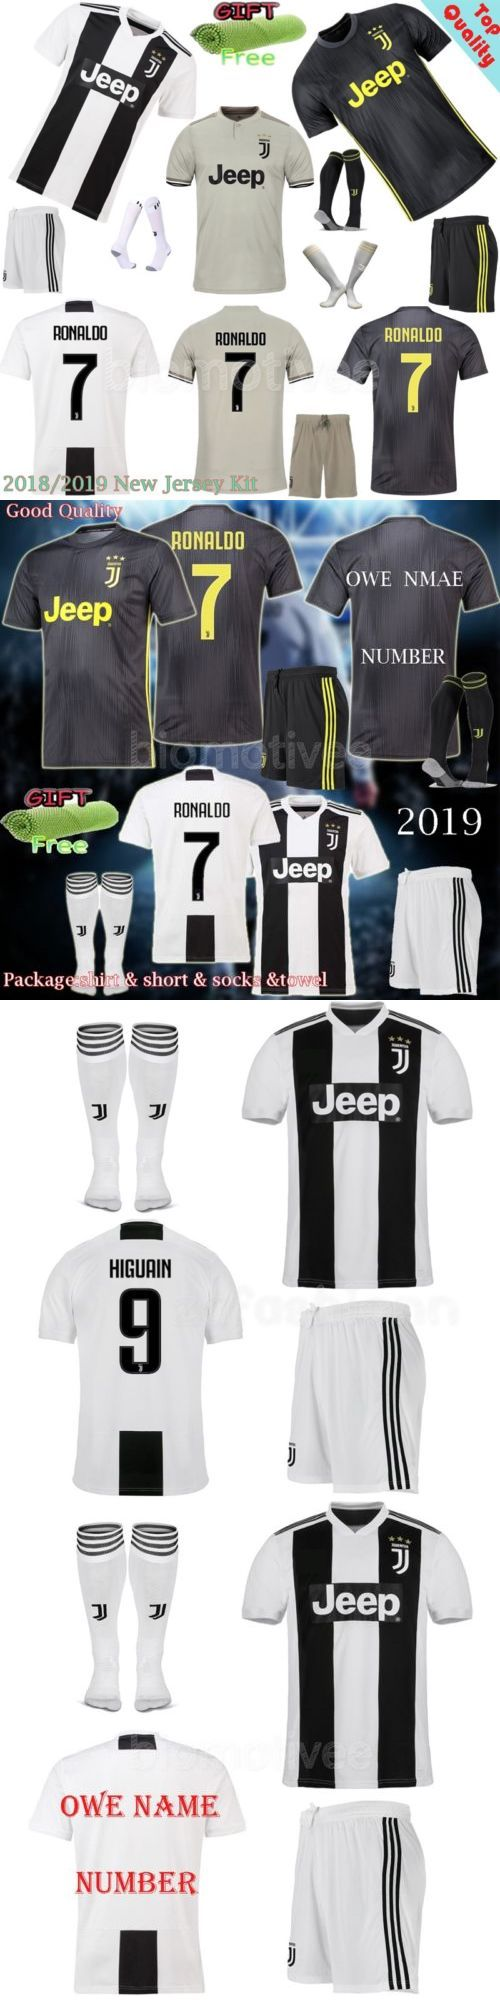 a4ce622e51a Outfits and Sets 156790: 2019 Adult Football Club Soccer Kids Suit Jersey  Kits Shirt Short Socks Outfits -> BUY IT NOW ONLY:… | Outfits and Sets  156790 ...